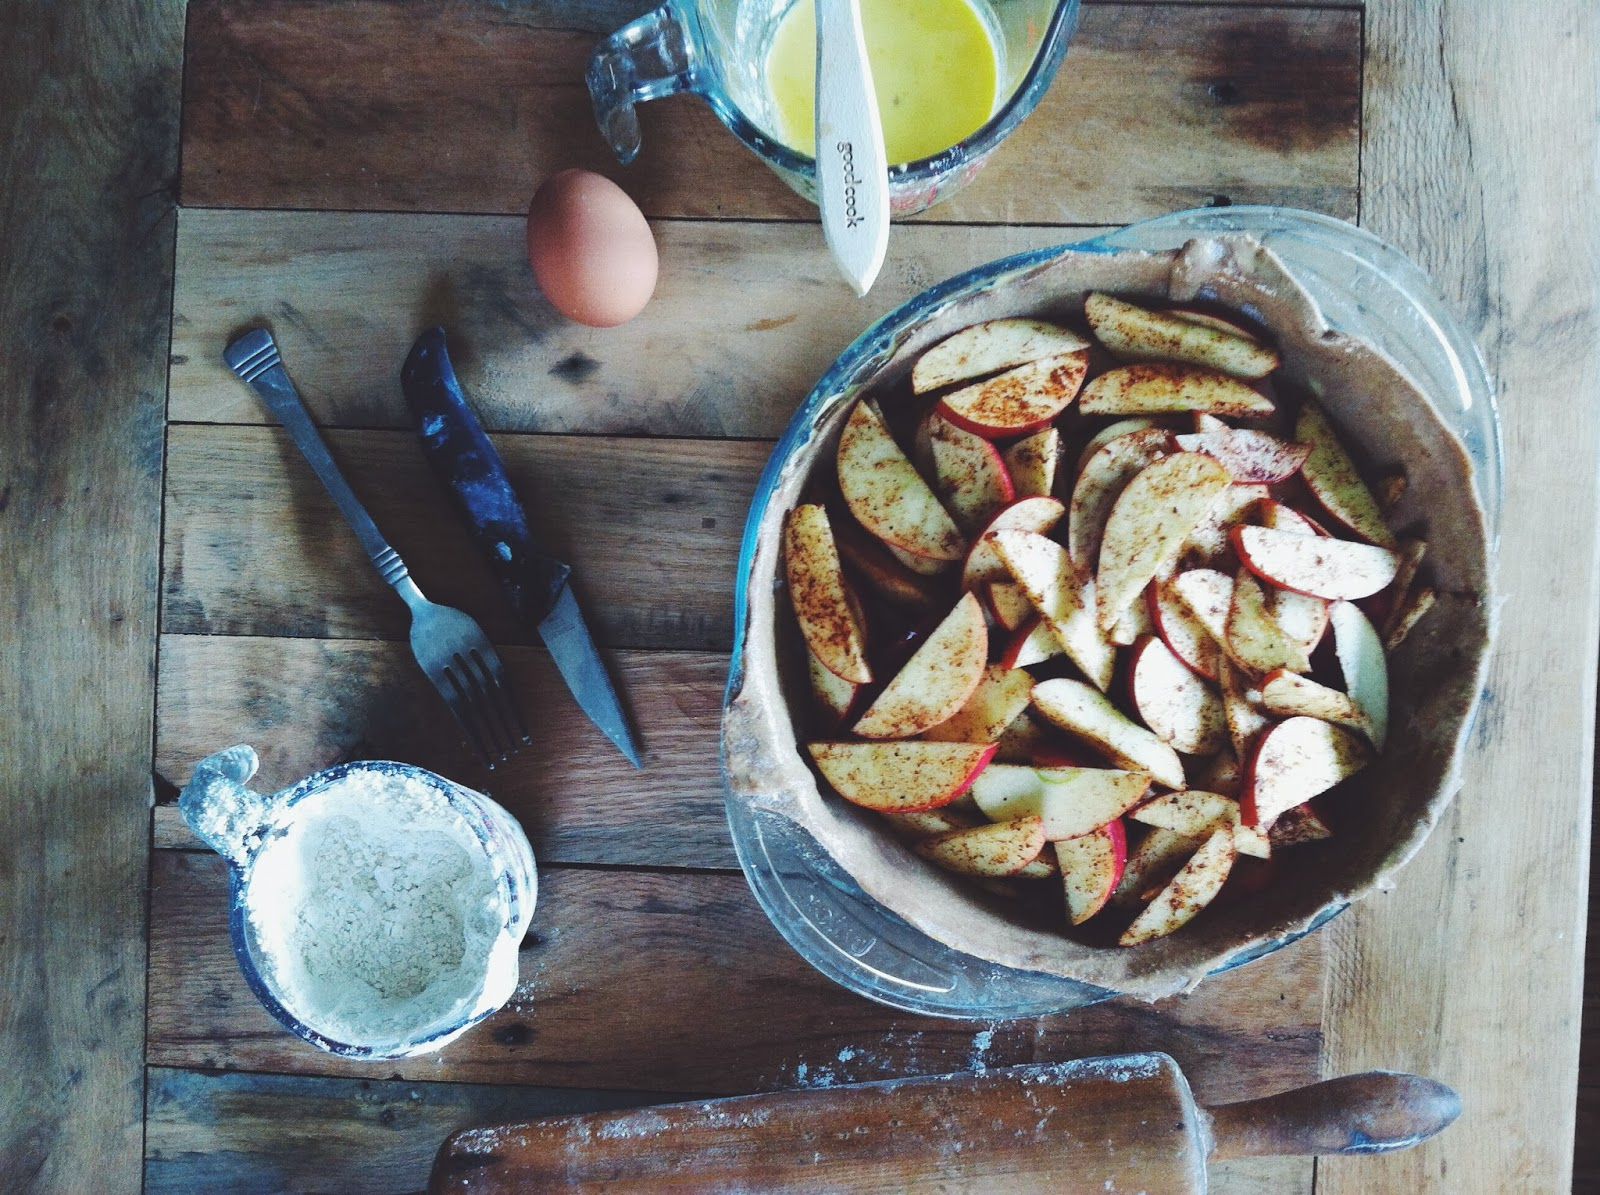 Apple Pie by Tara Jensen of Smoke Signals Baking @bakerhands